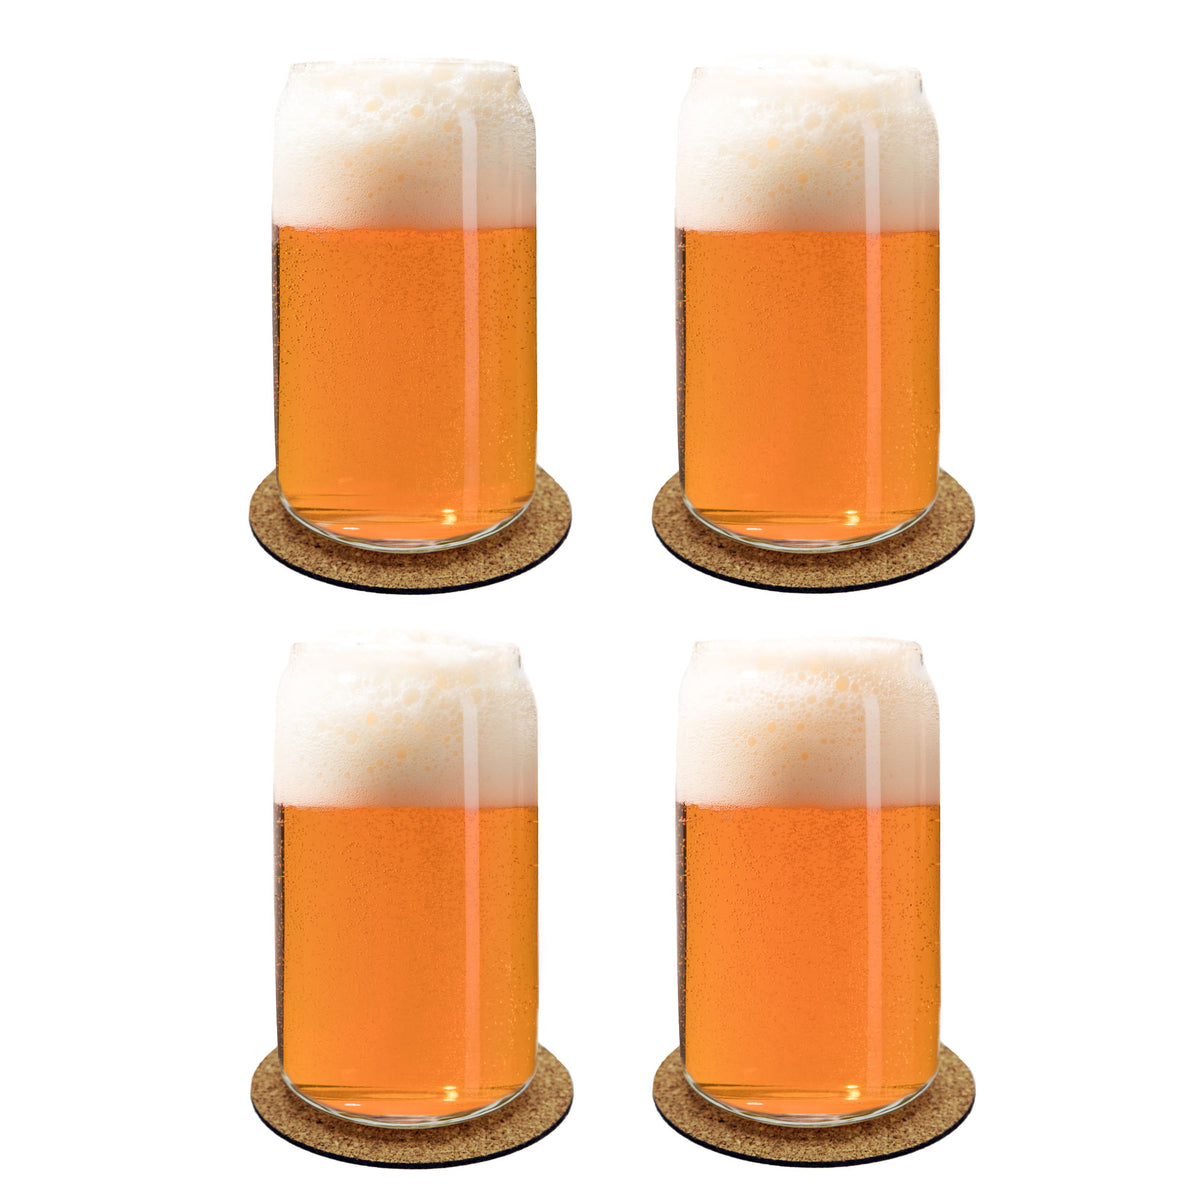 Ecodesign drinkware libbey beer can with coasters